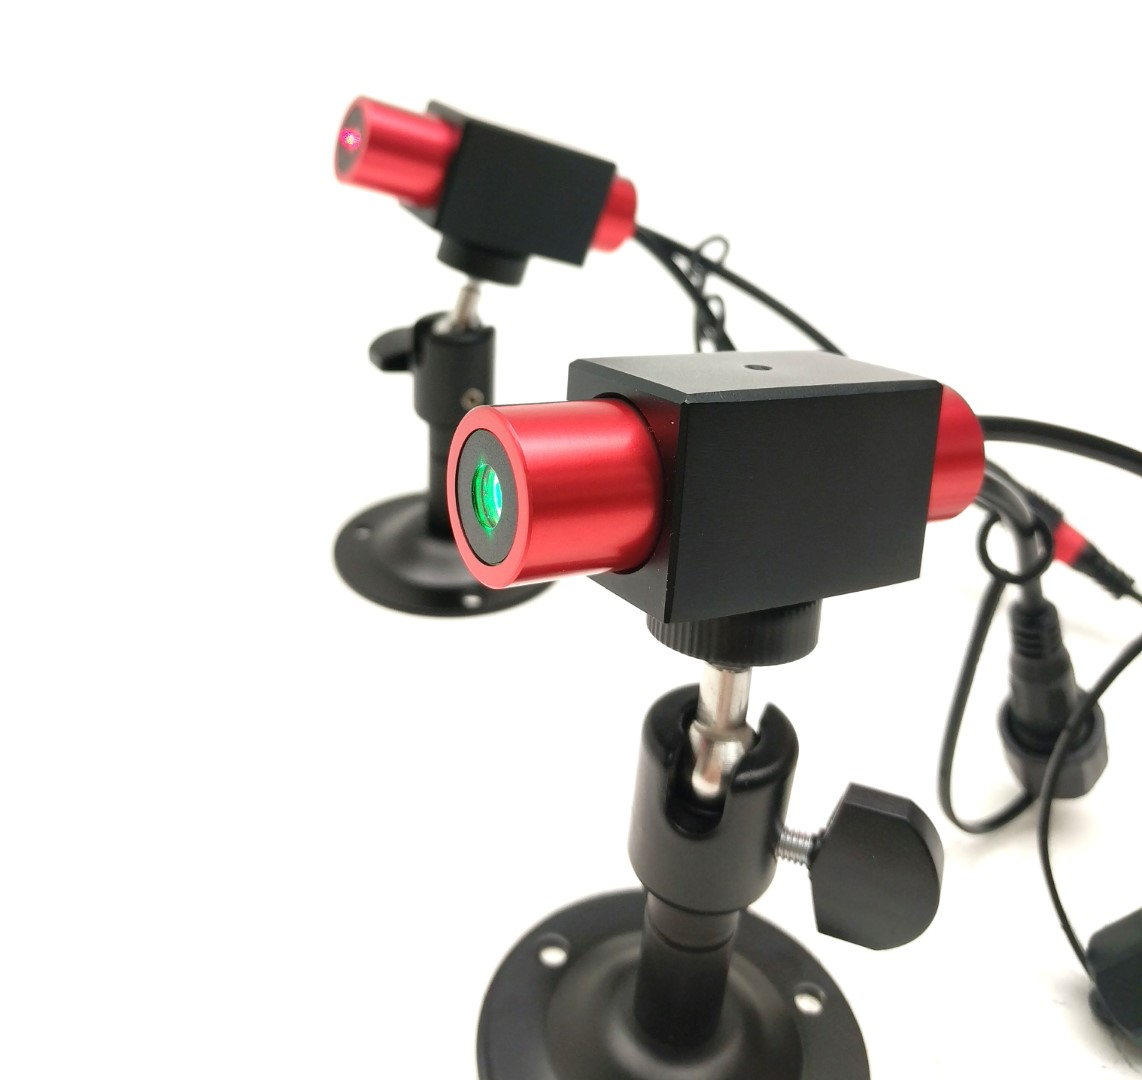 5 mW 635 nm Red Premium Structured Cross Laser, 2° fan angle, adjustable focus, TTL+, Sealed IP67